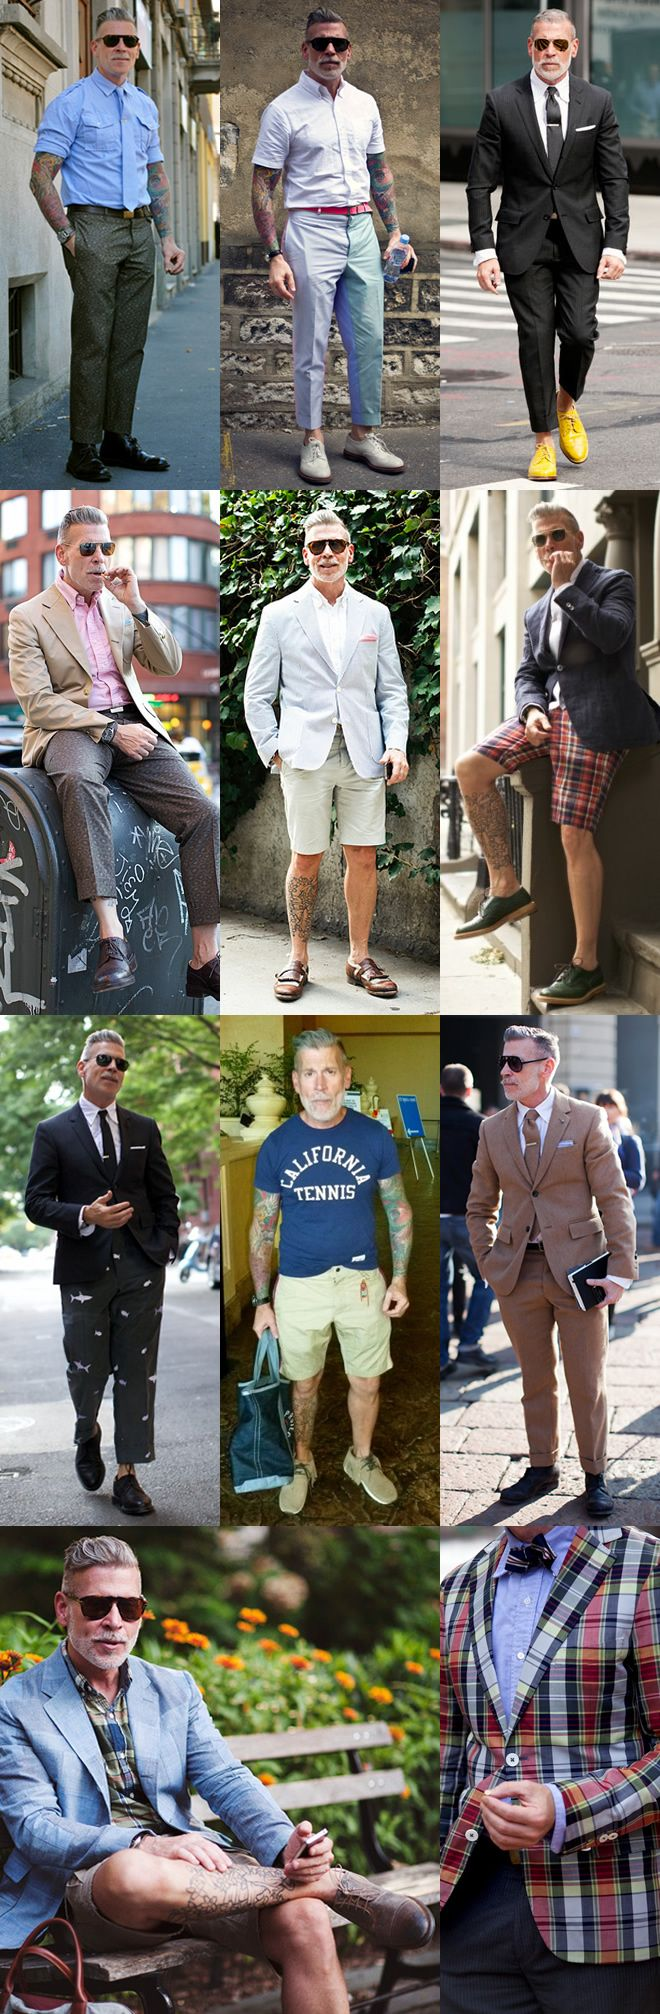 Why can't all grandpas look this nice What a fashionista